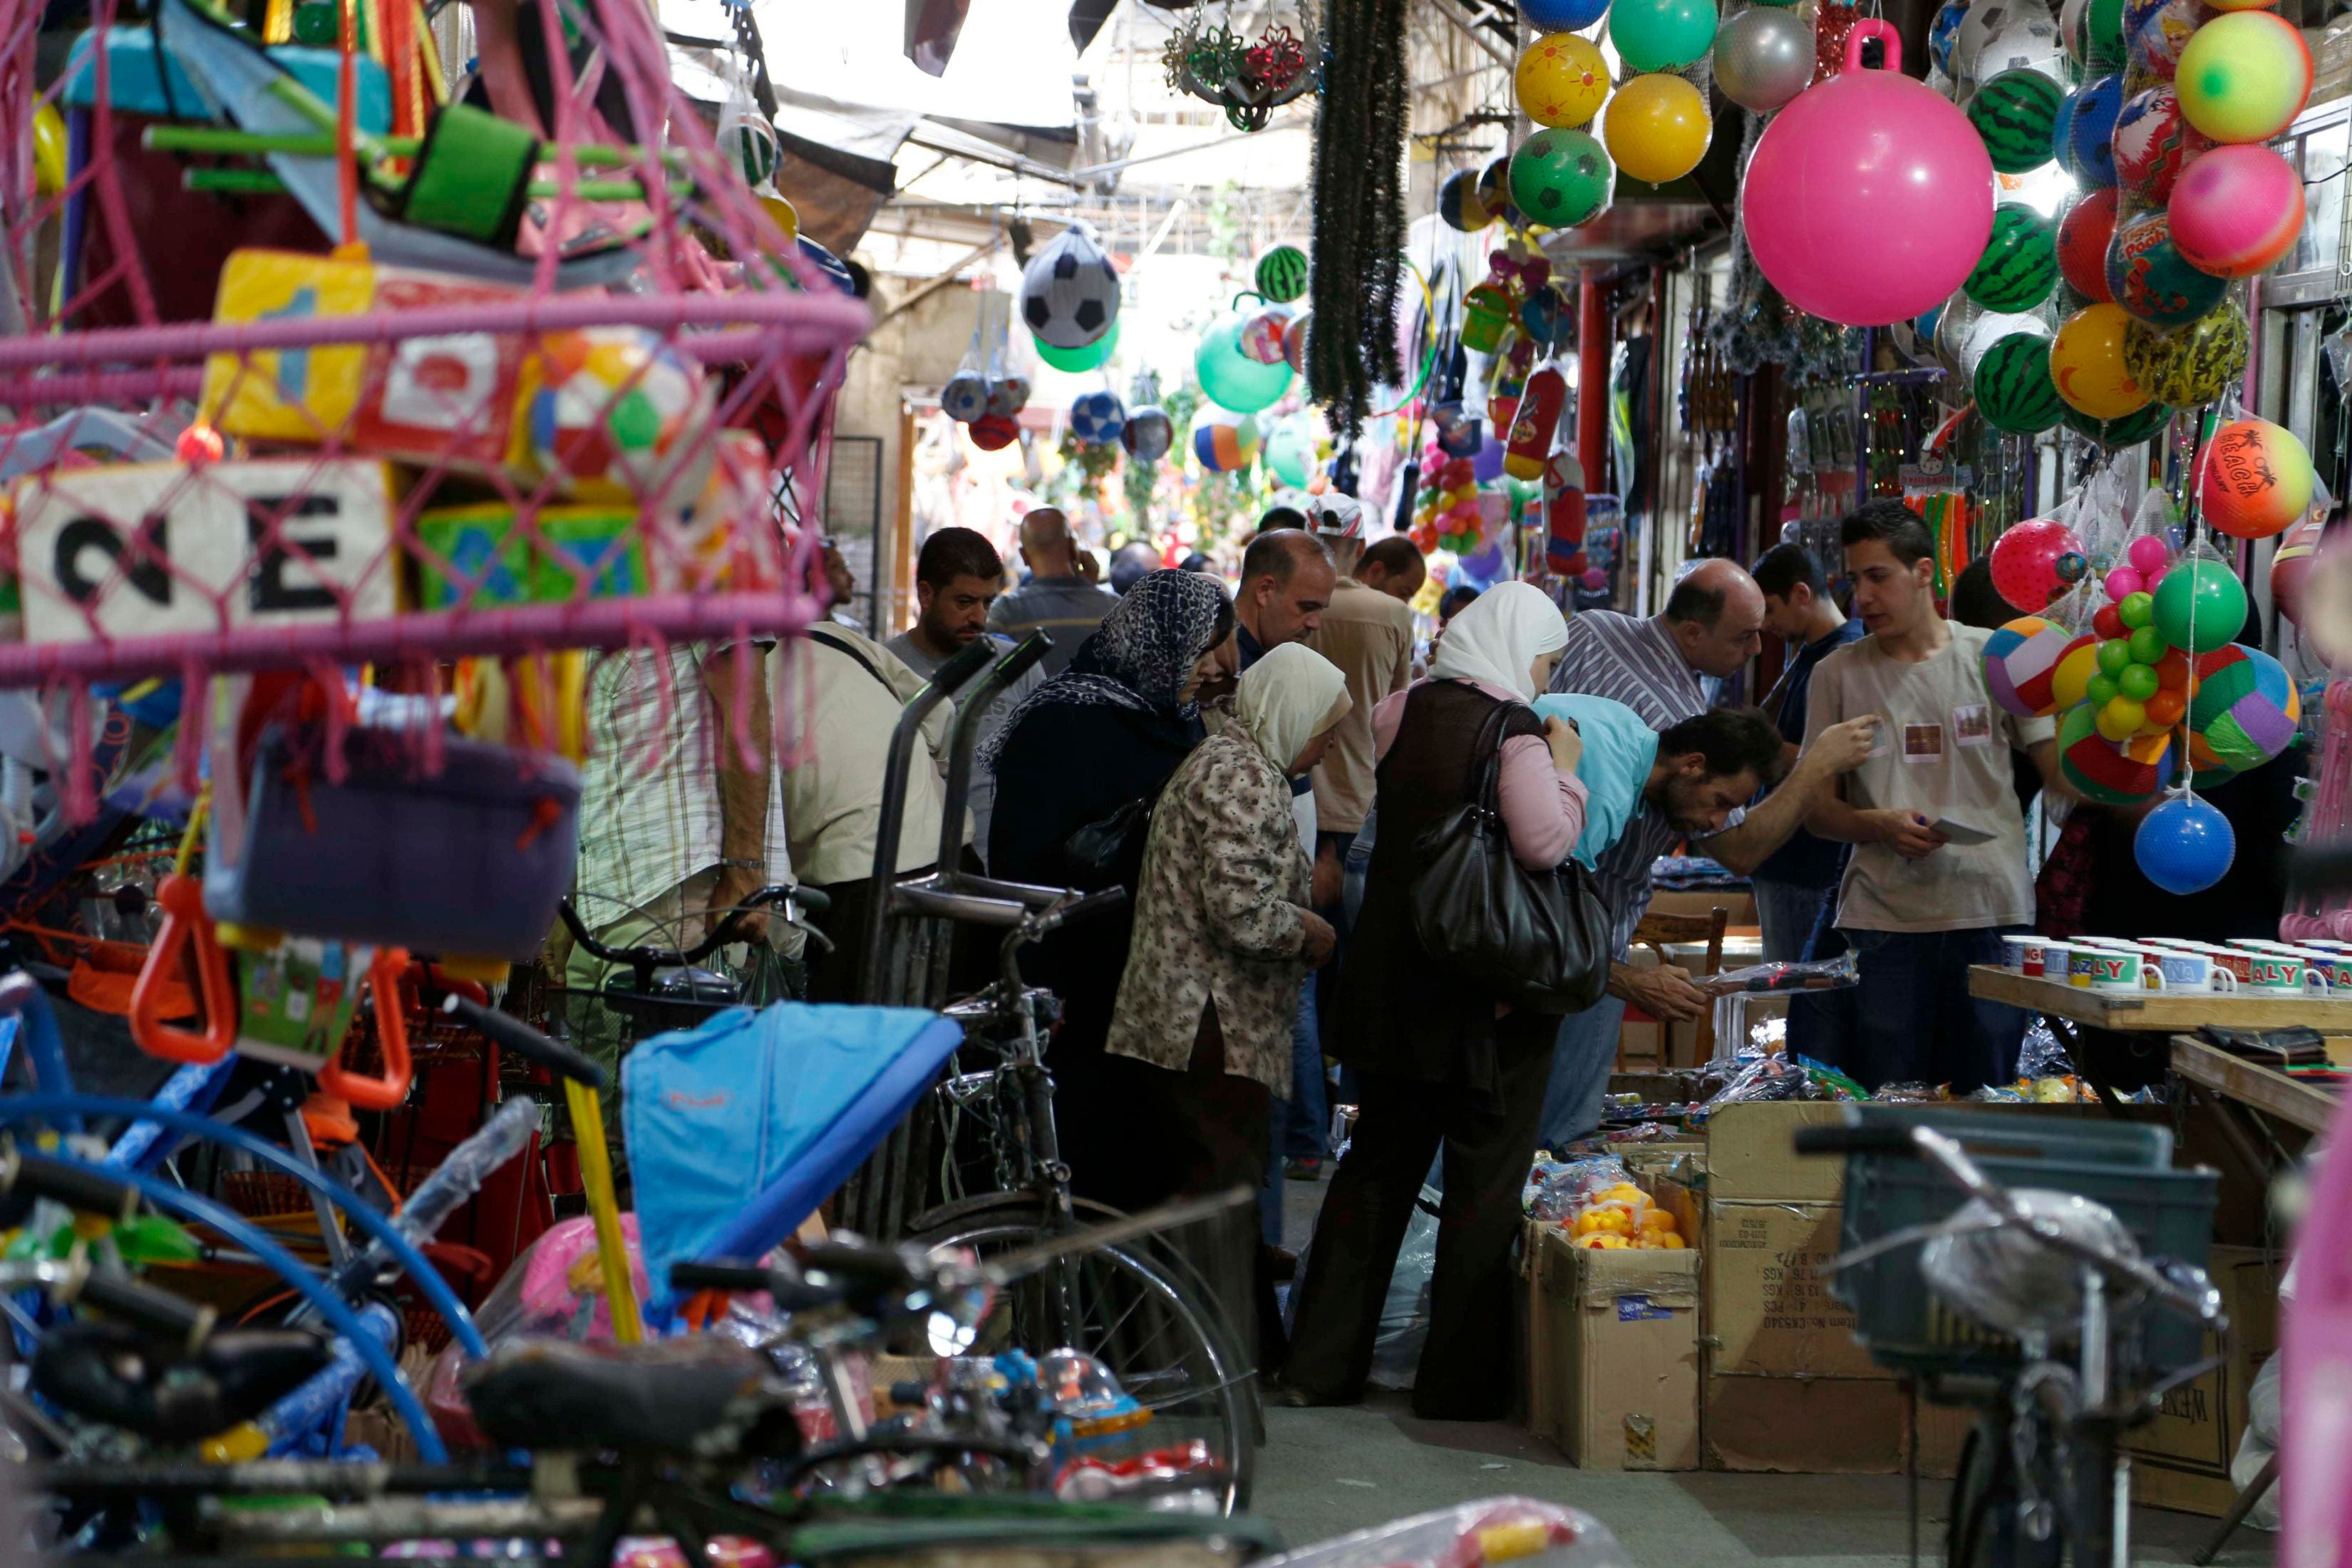 Residents inspect toys in Al-Asrouniyeh souk ahead of Eid al-Fitr celebrations in Damascus July 27, 2014. Reuters